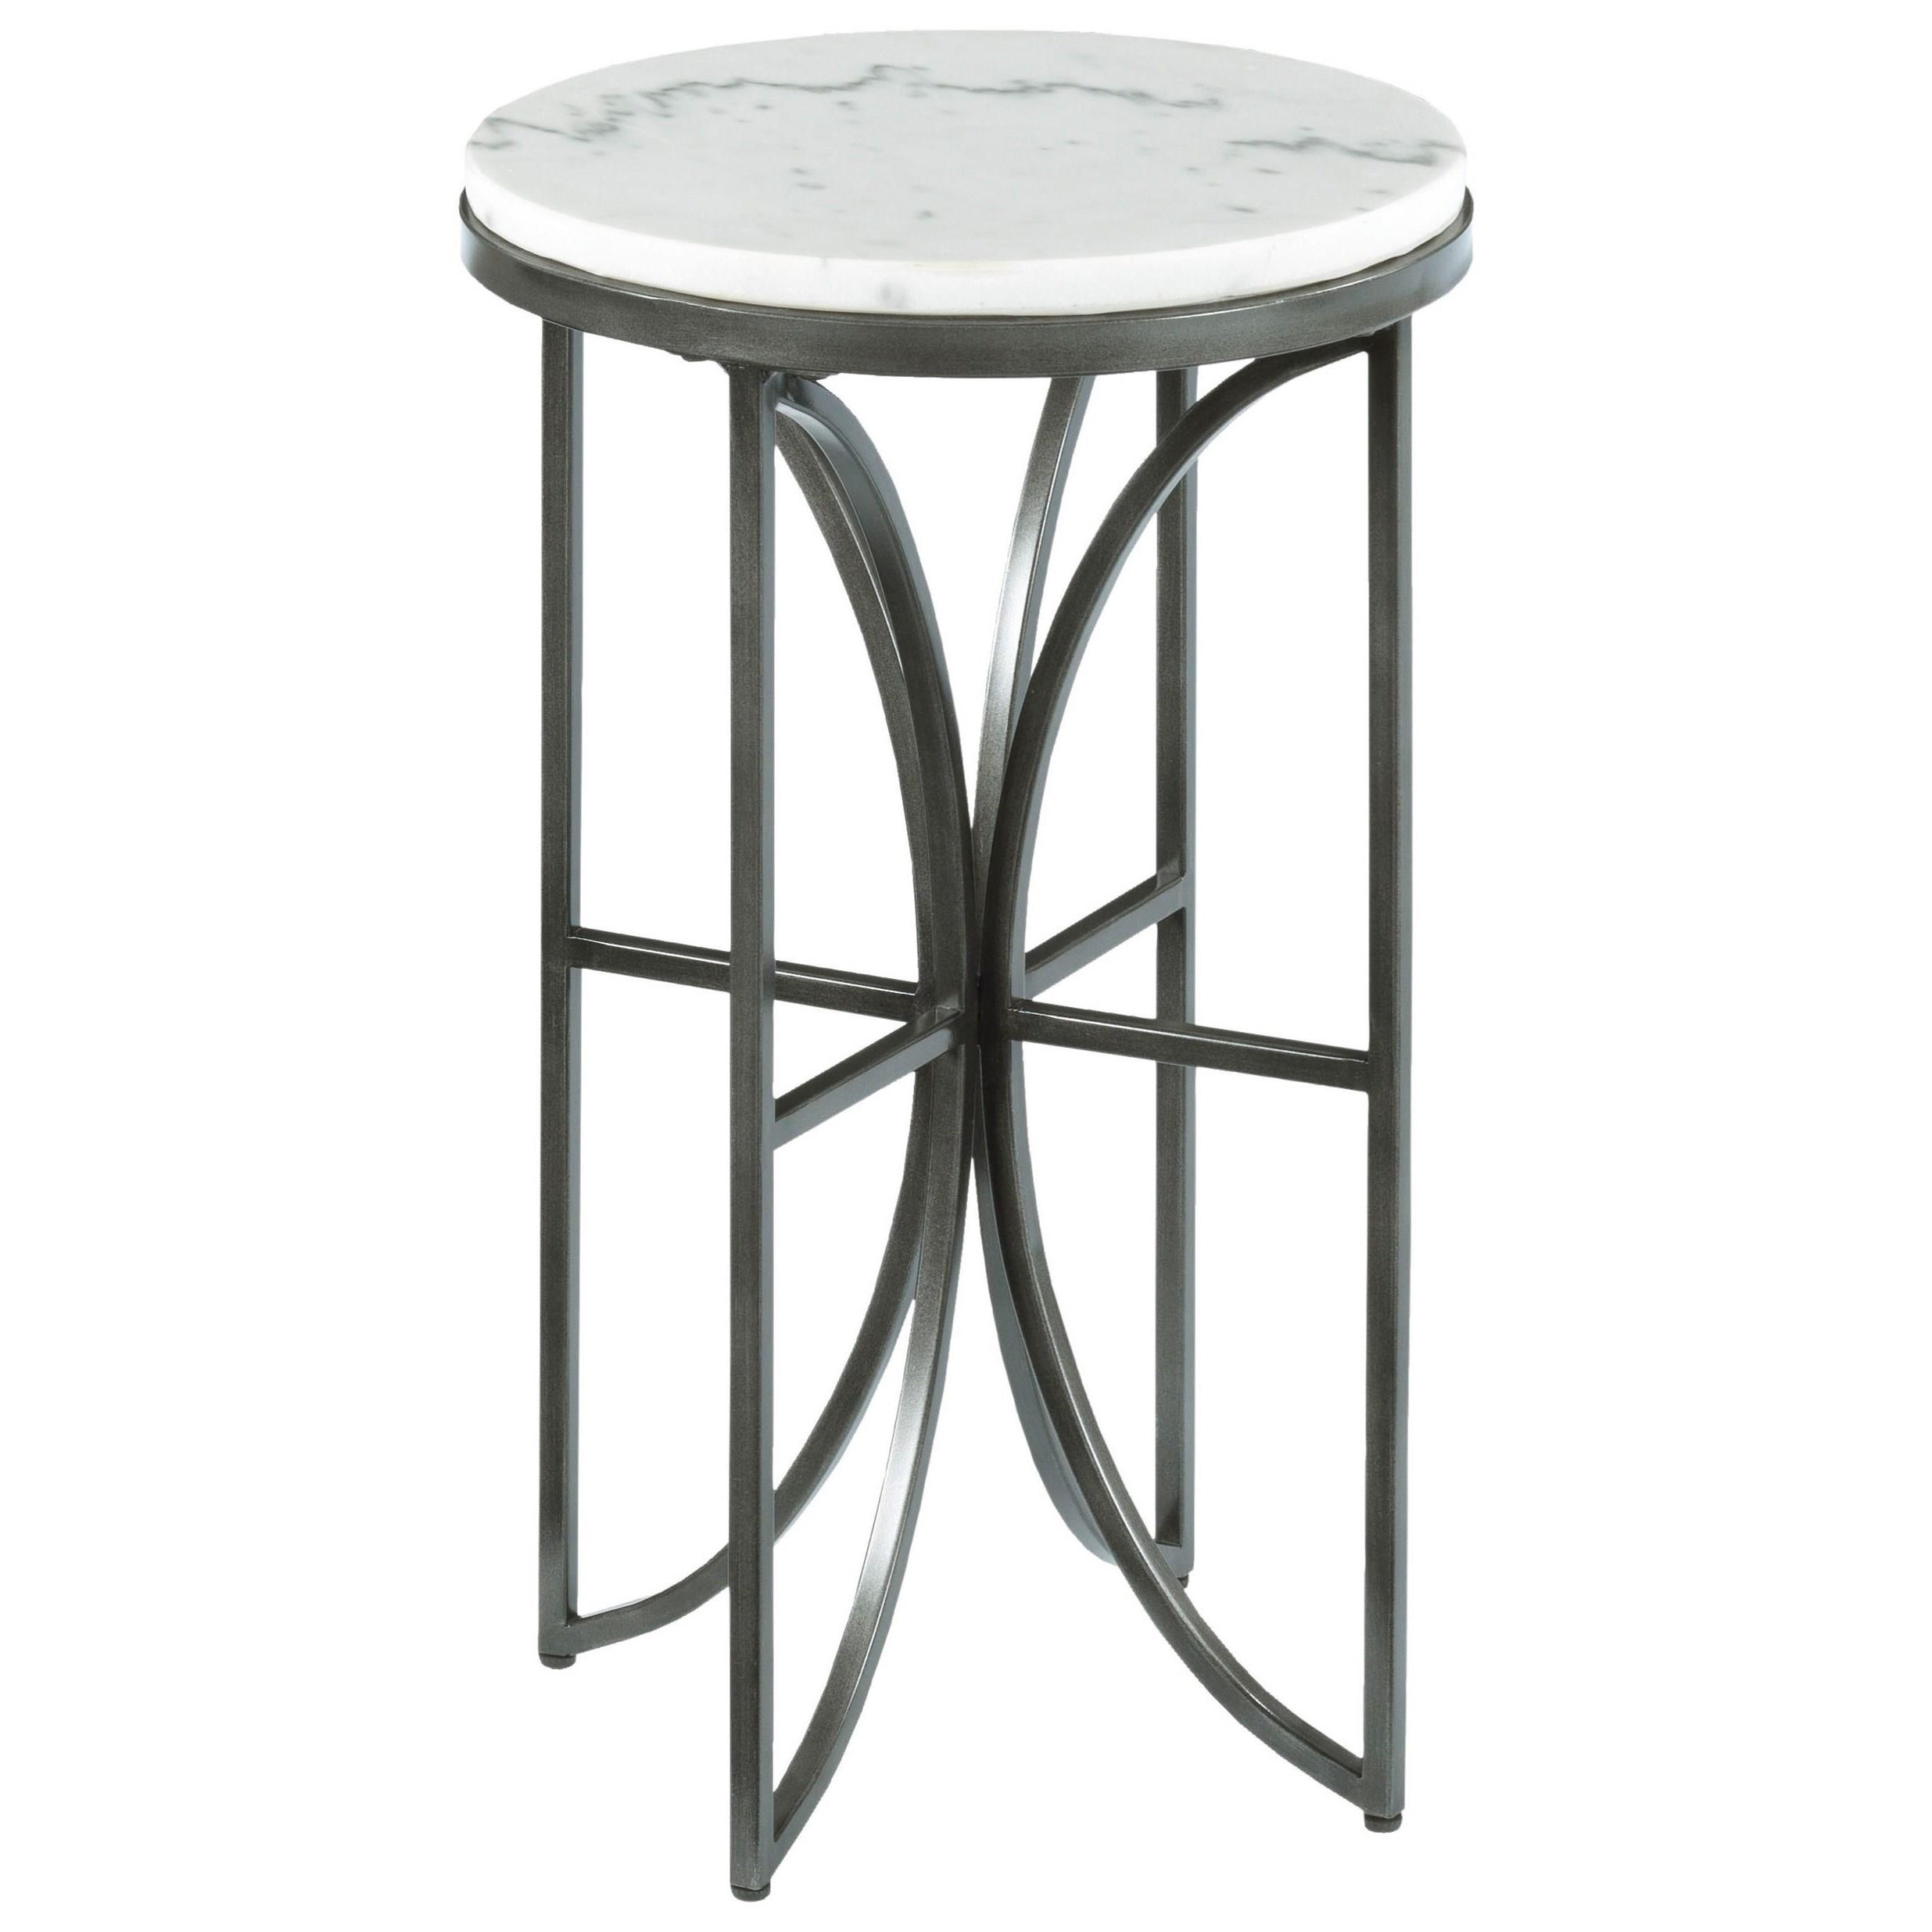 small round accent table with marble top hammary wolf and products color impact side tables hallway console cabinet white outdoor couch set narrow sofa behind kitchen chairs glass